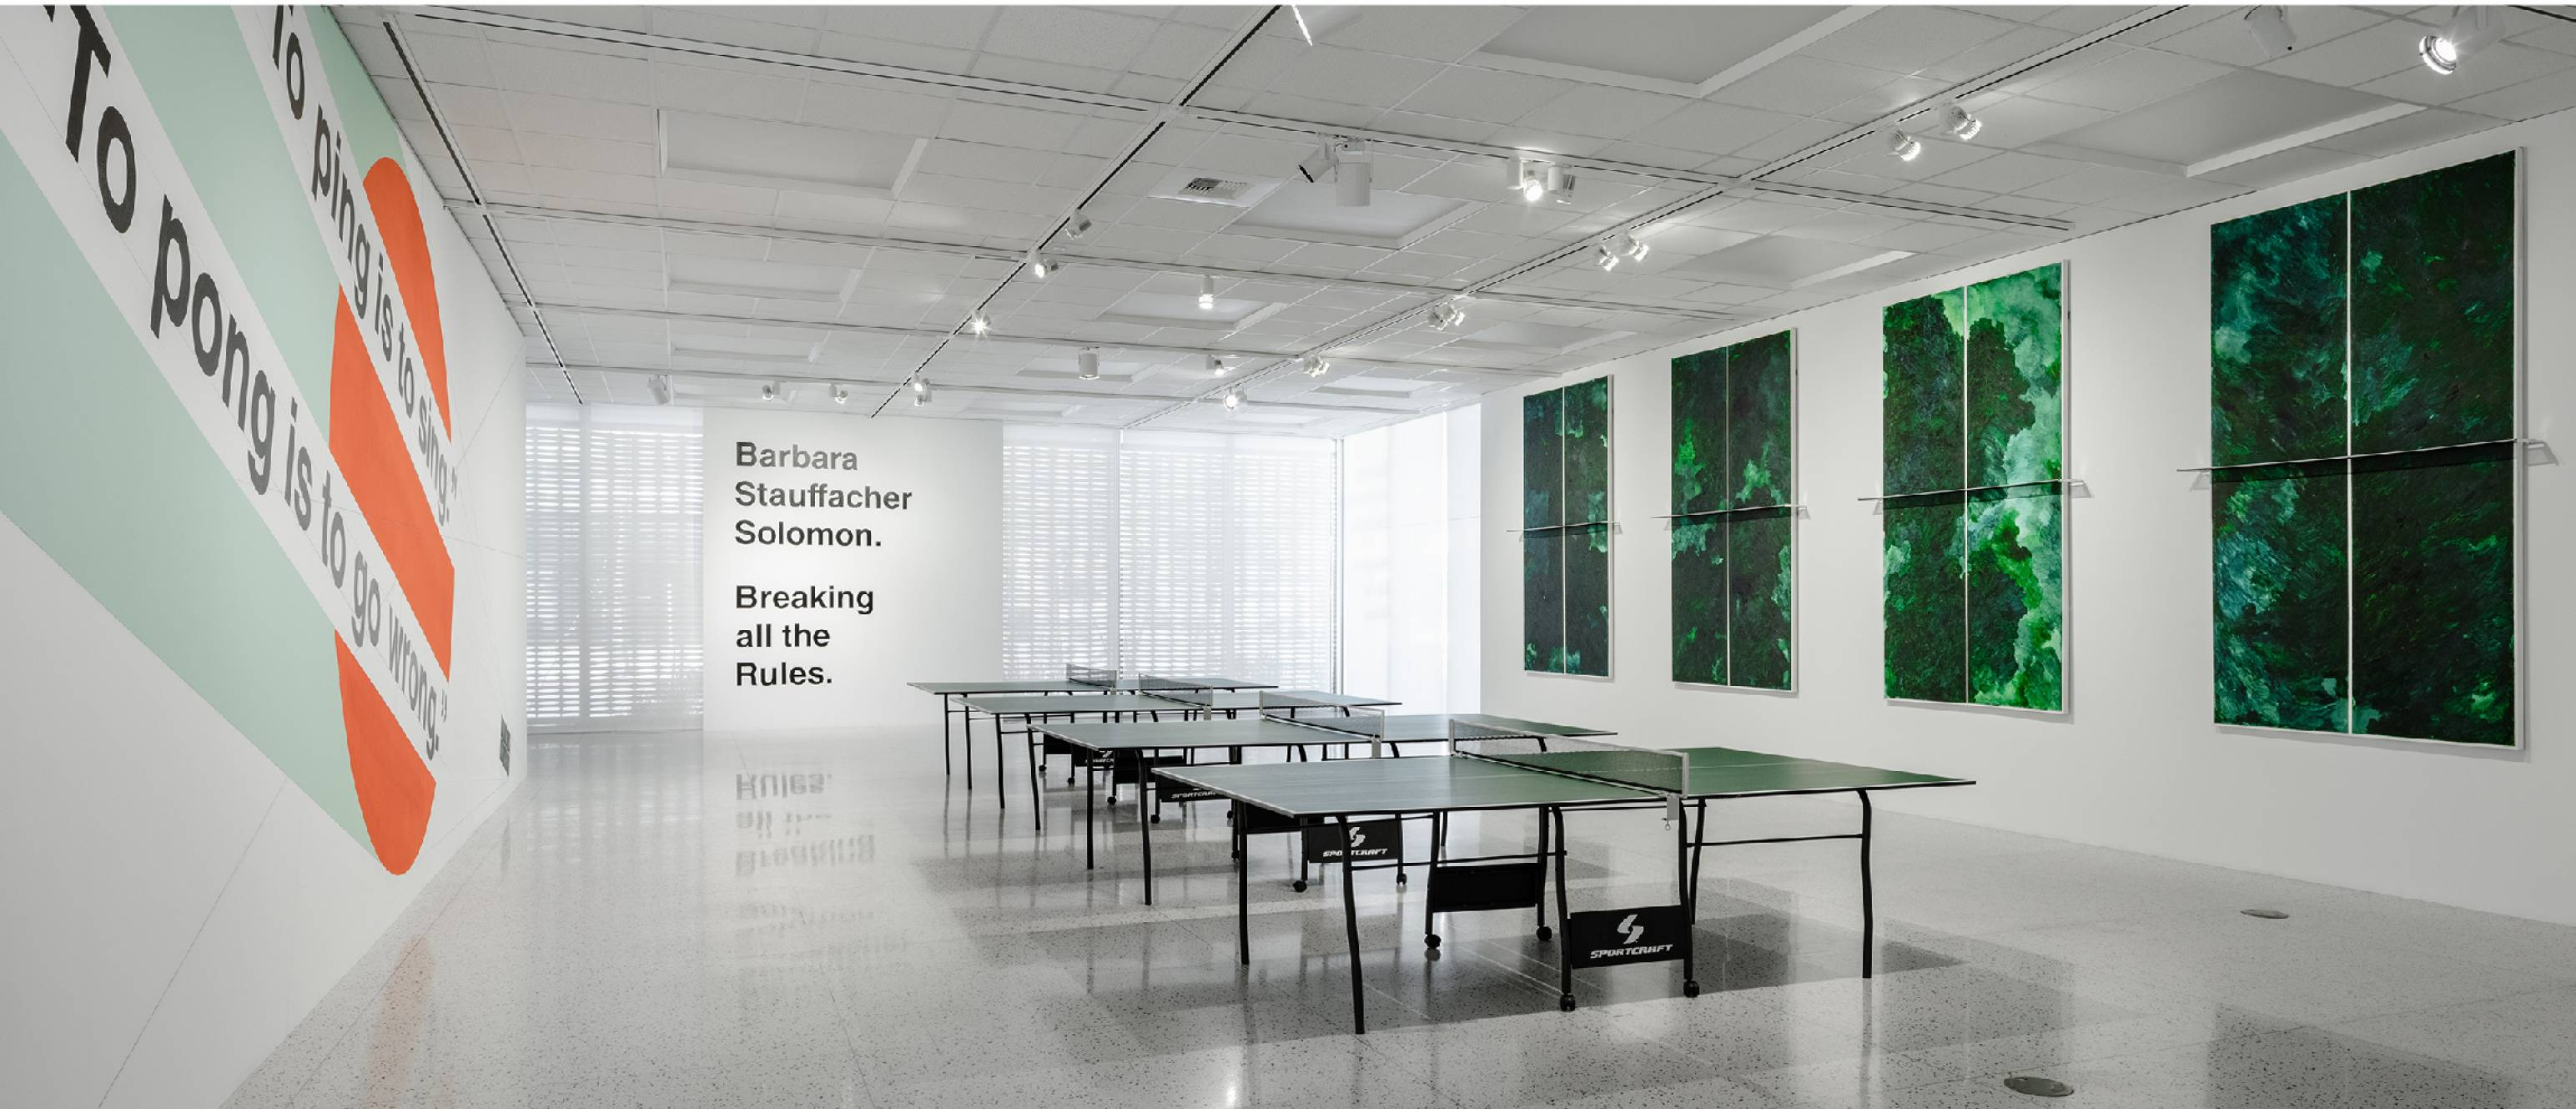 Main gallery with ping pong tables and artworks on the walls